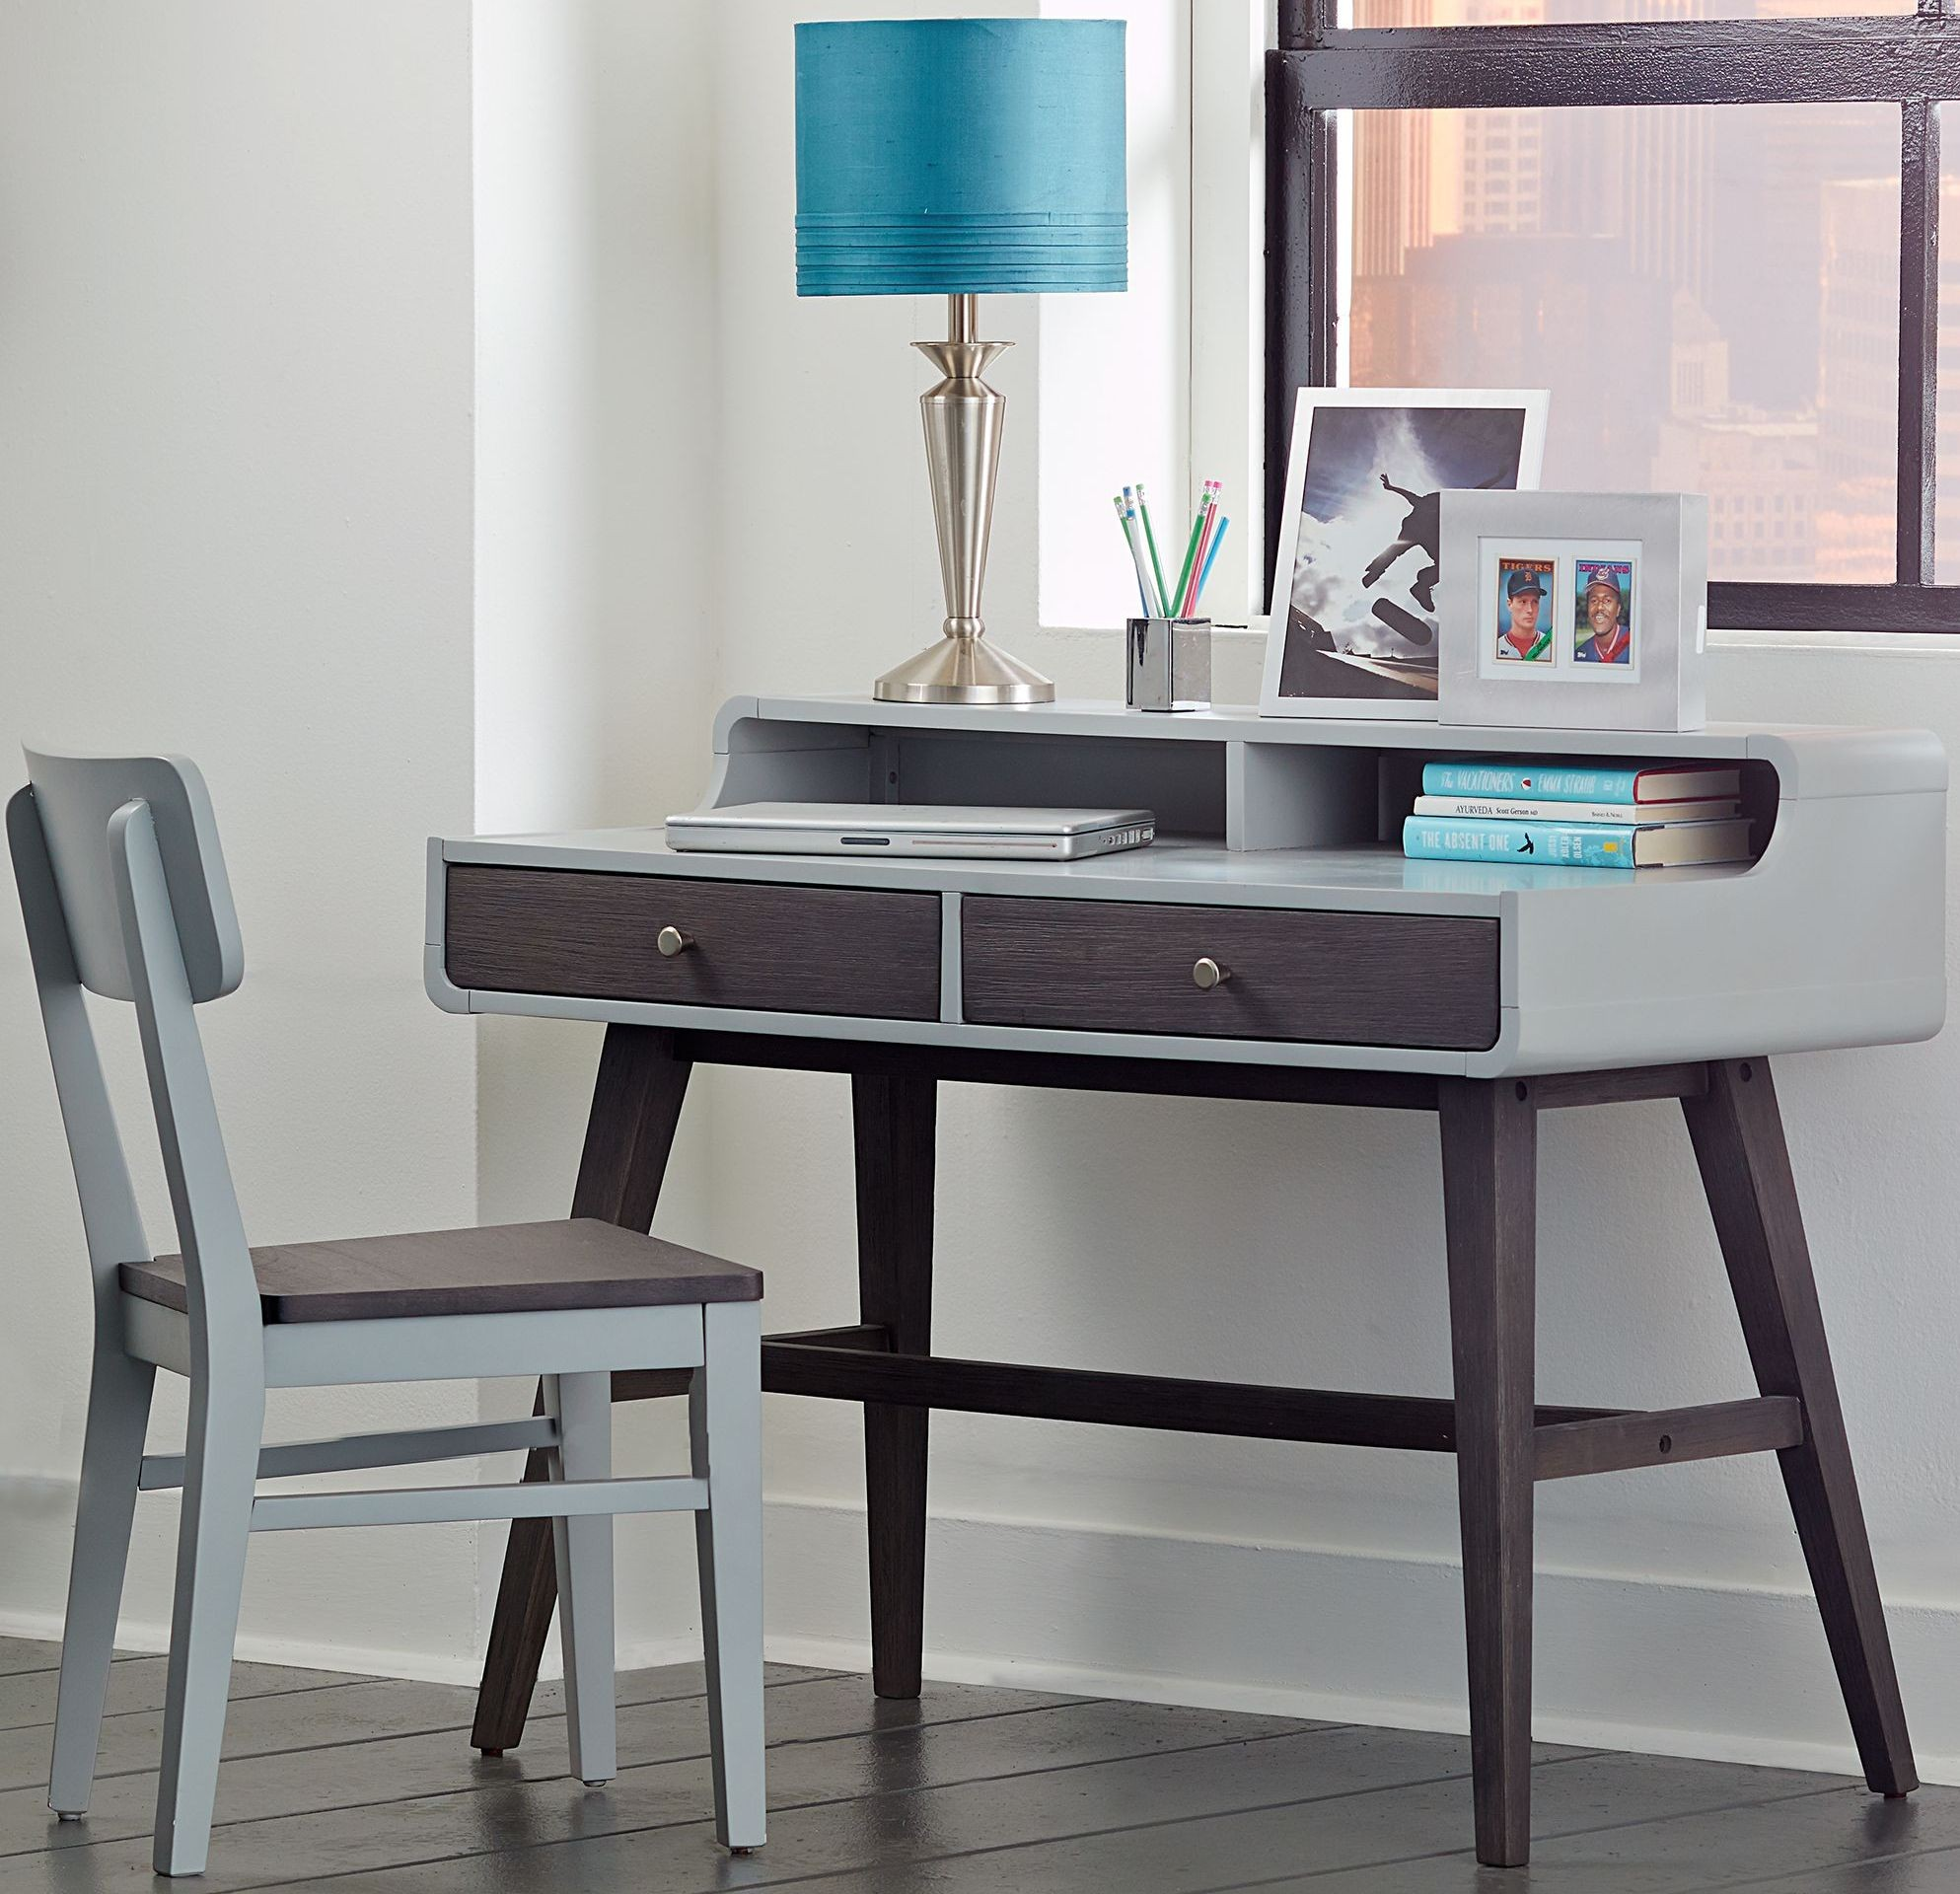 East End Grey Desk With Chair From Ne Kids Coleman Furniture